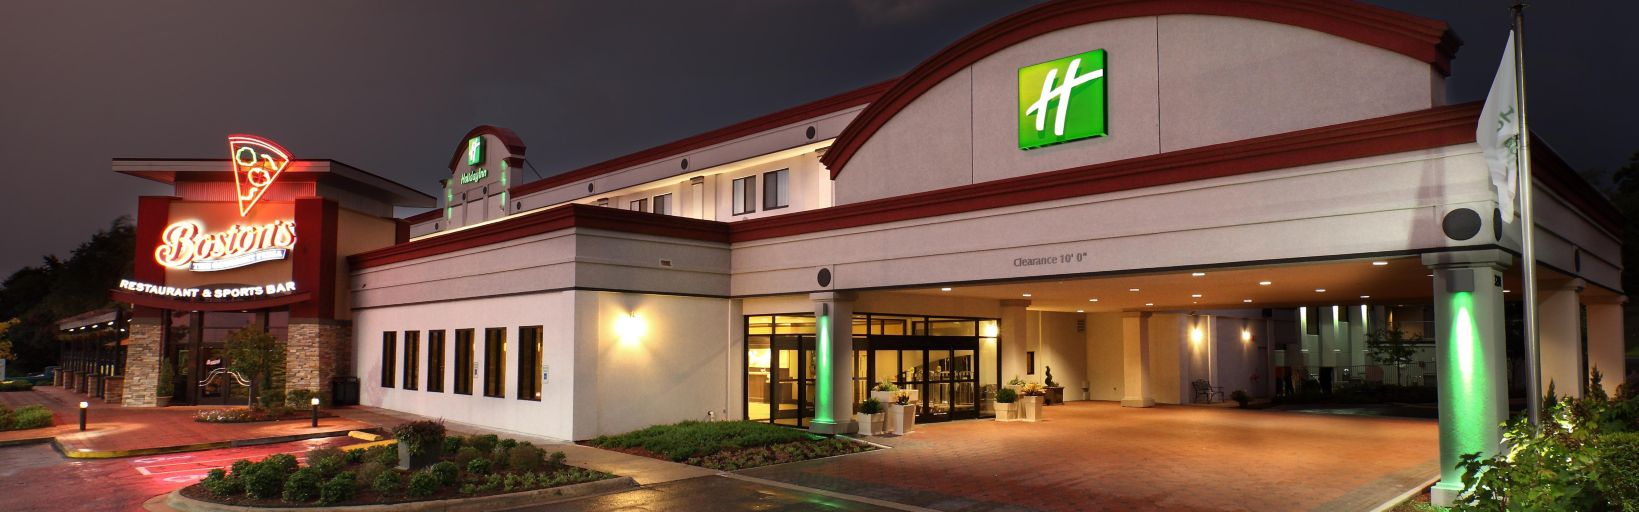 Holiday Inn Little Rock-Airport-Conf Ctr Hotel by IHG